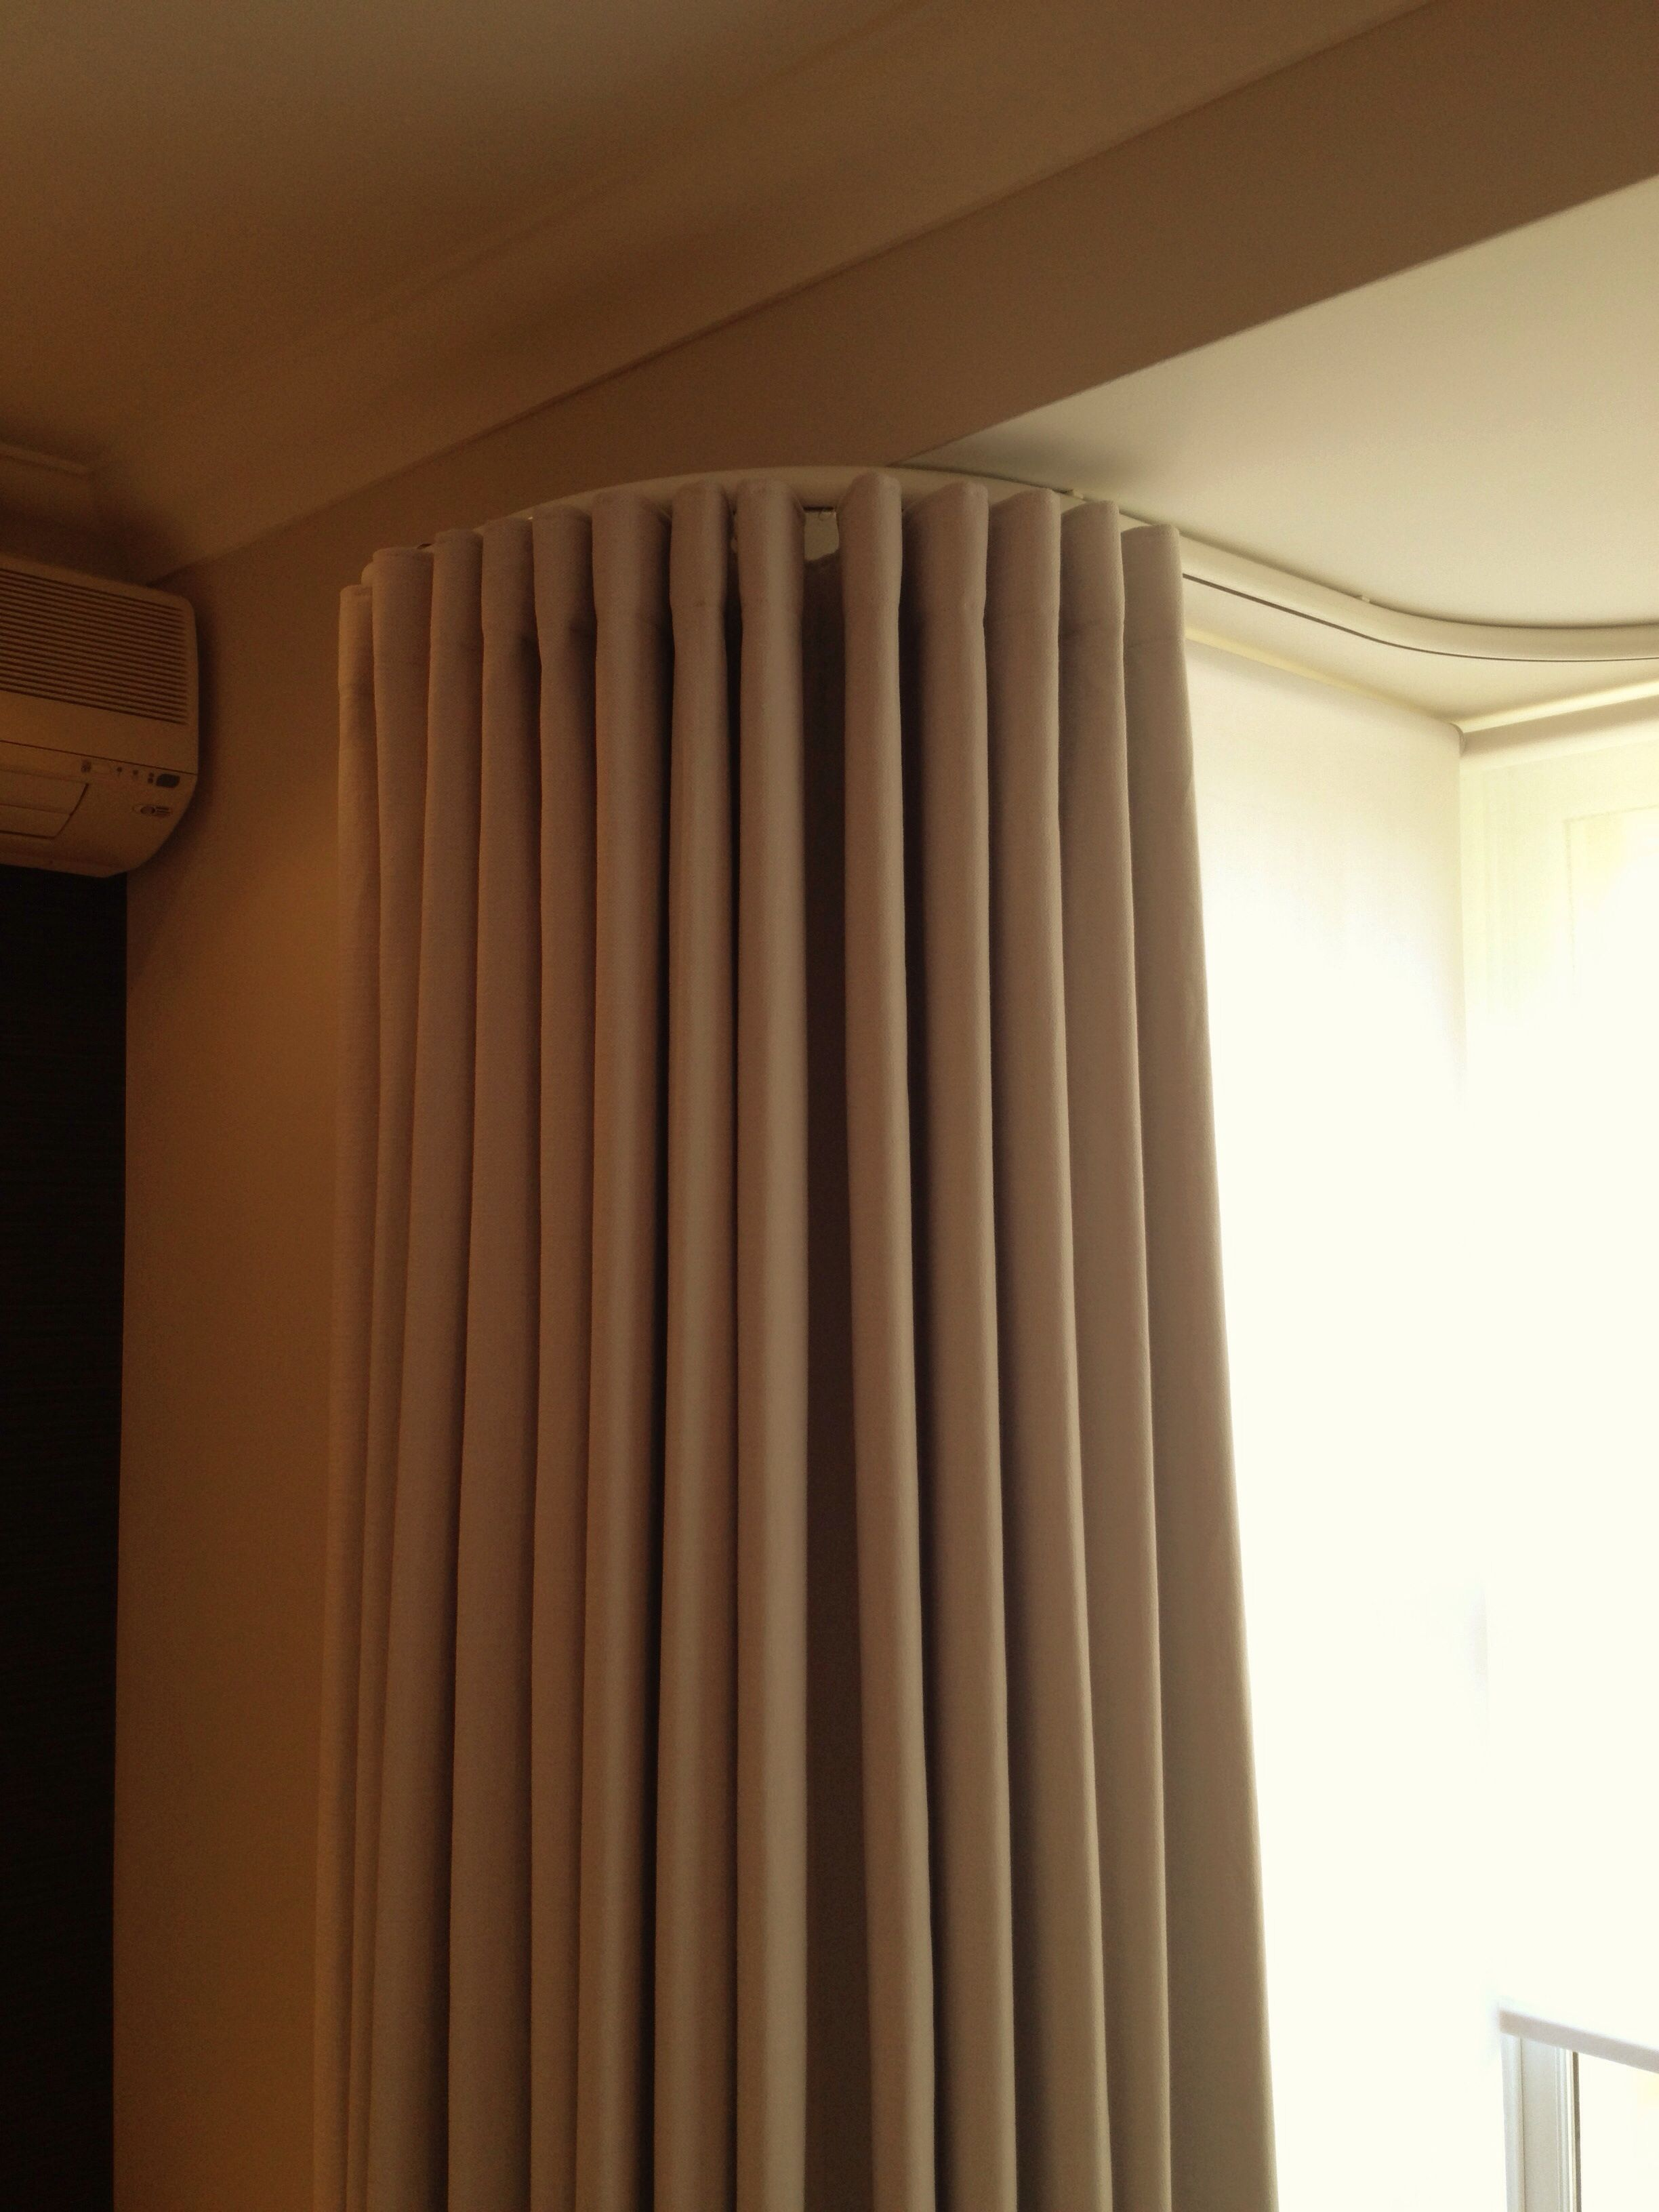 Spannende Fensterdeko Gardinen Ideen Erlene Window Treatments Wave Curtains On Bay London 020 8361 8339 Window